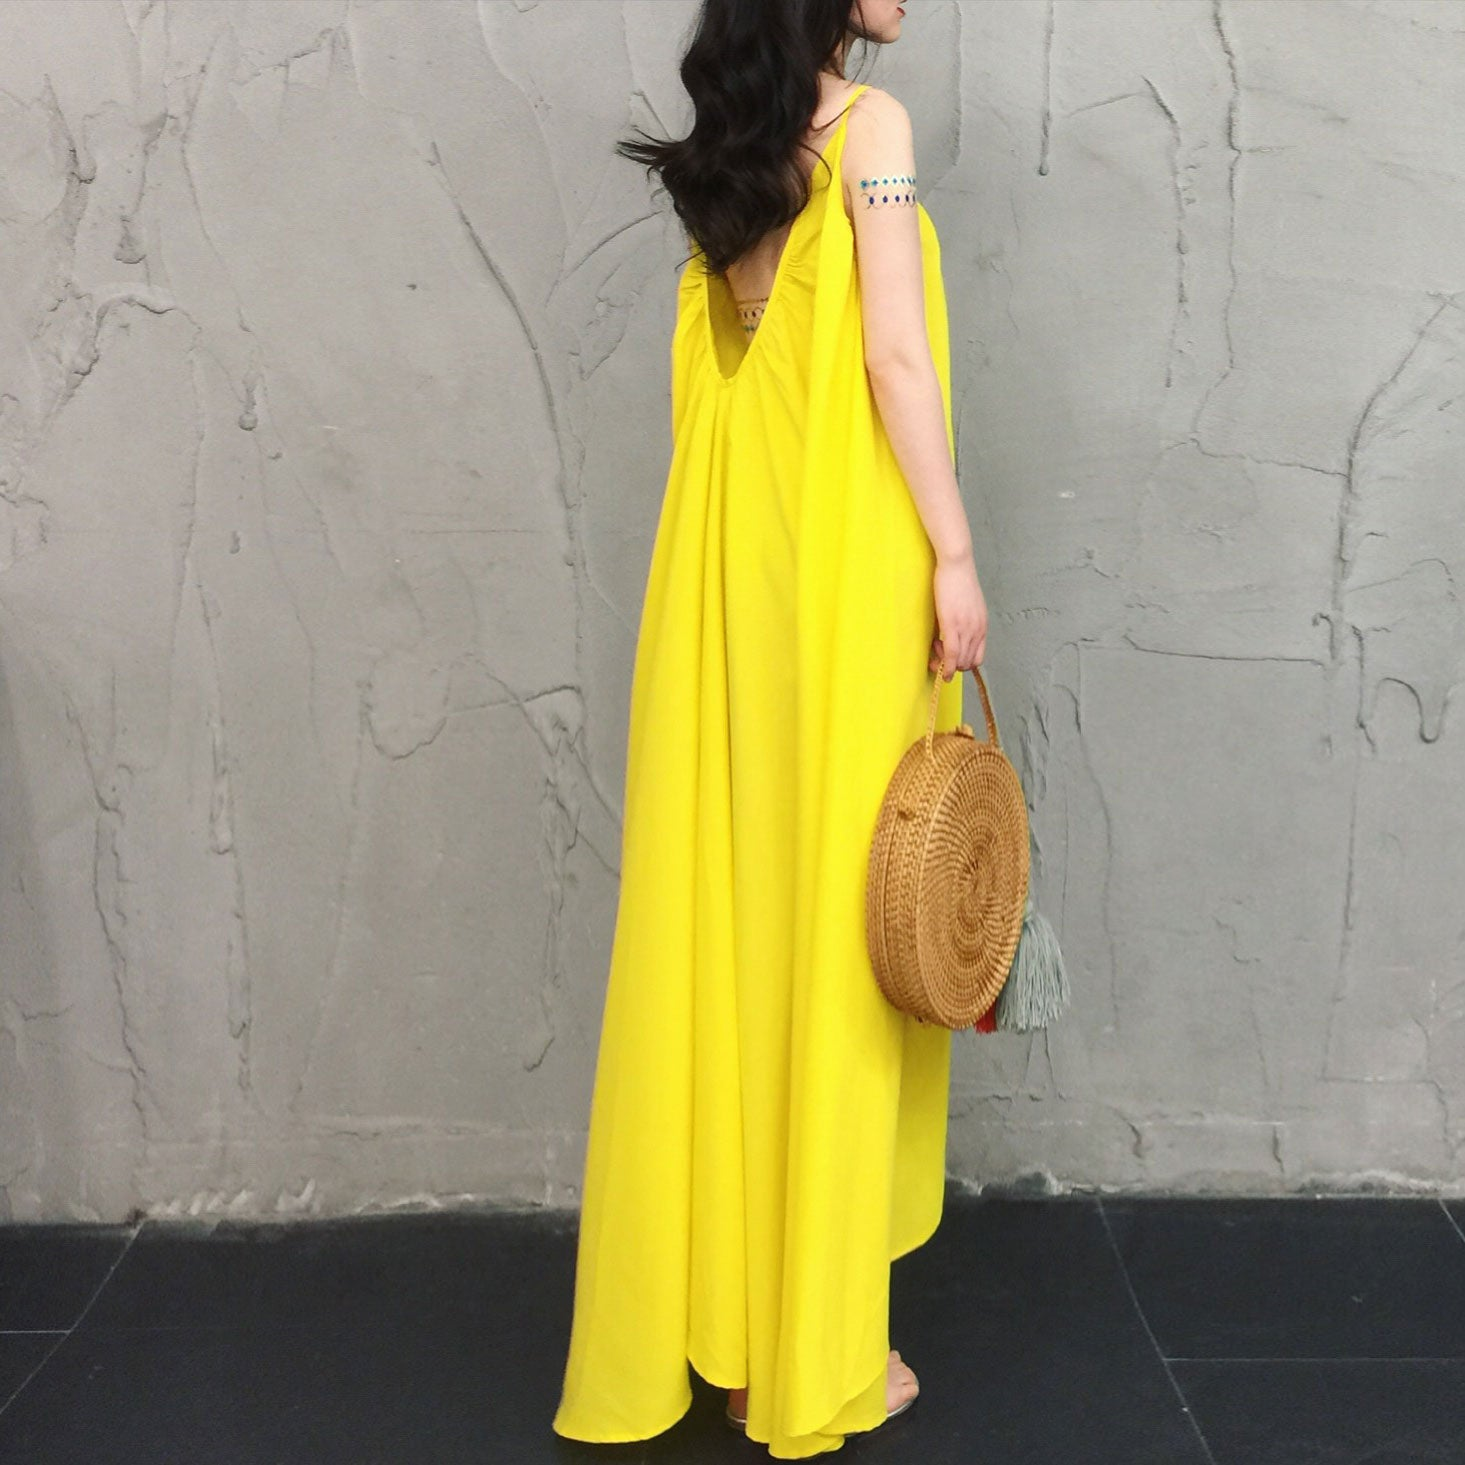 Yellow chiffon cute fashion dress, summer dress